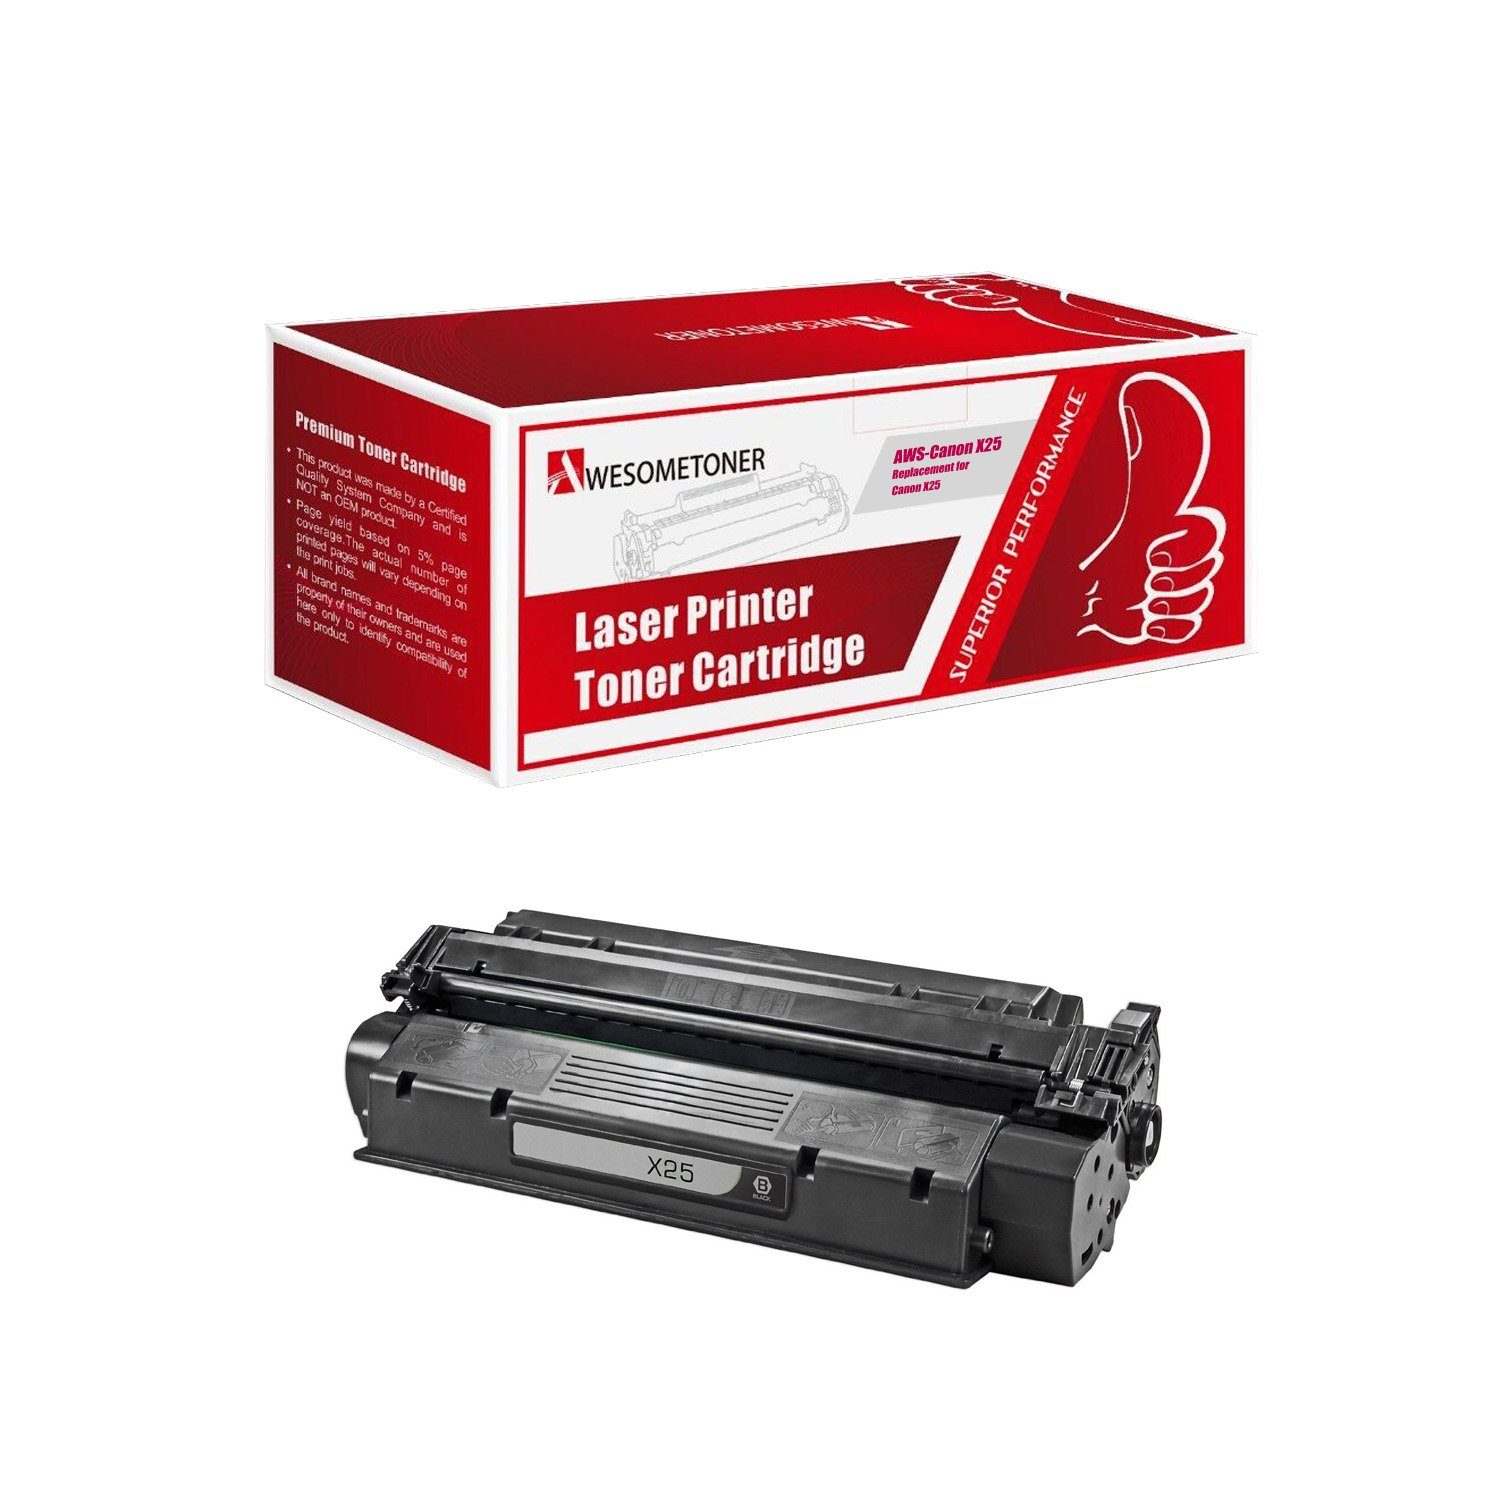 Amazon.com: Awesometoner Canon X25 Compatible Toner Replacement: Office  Products